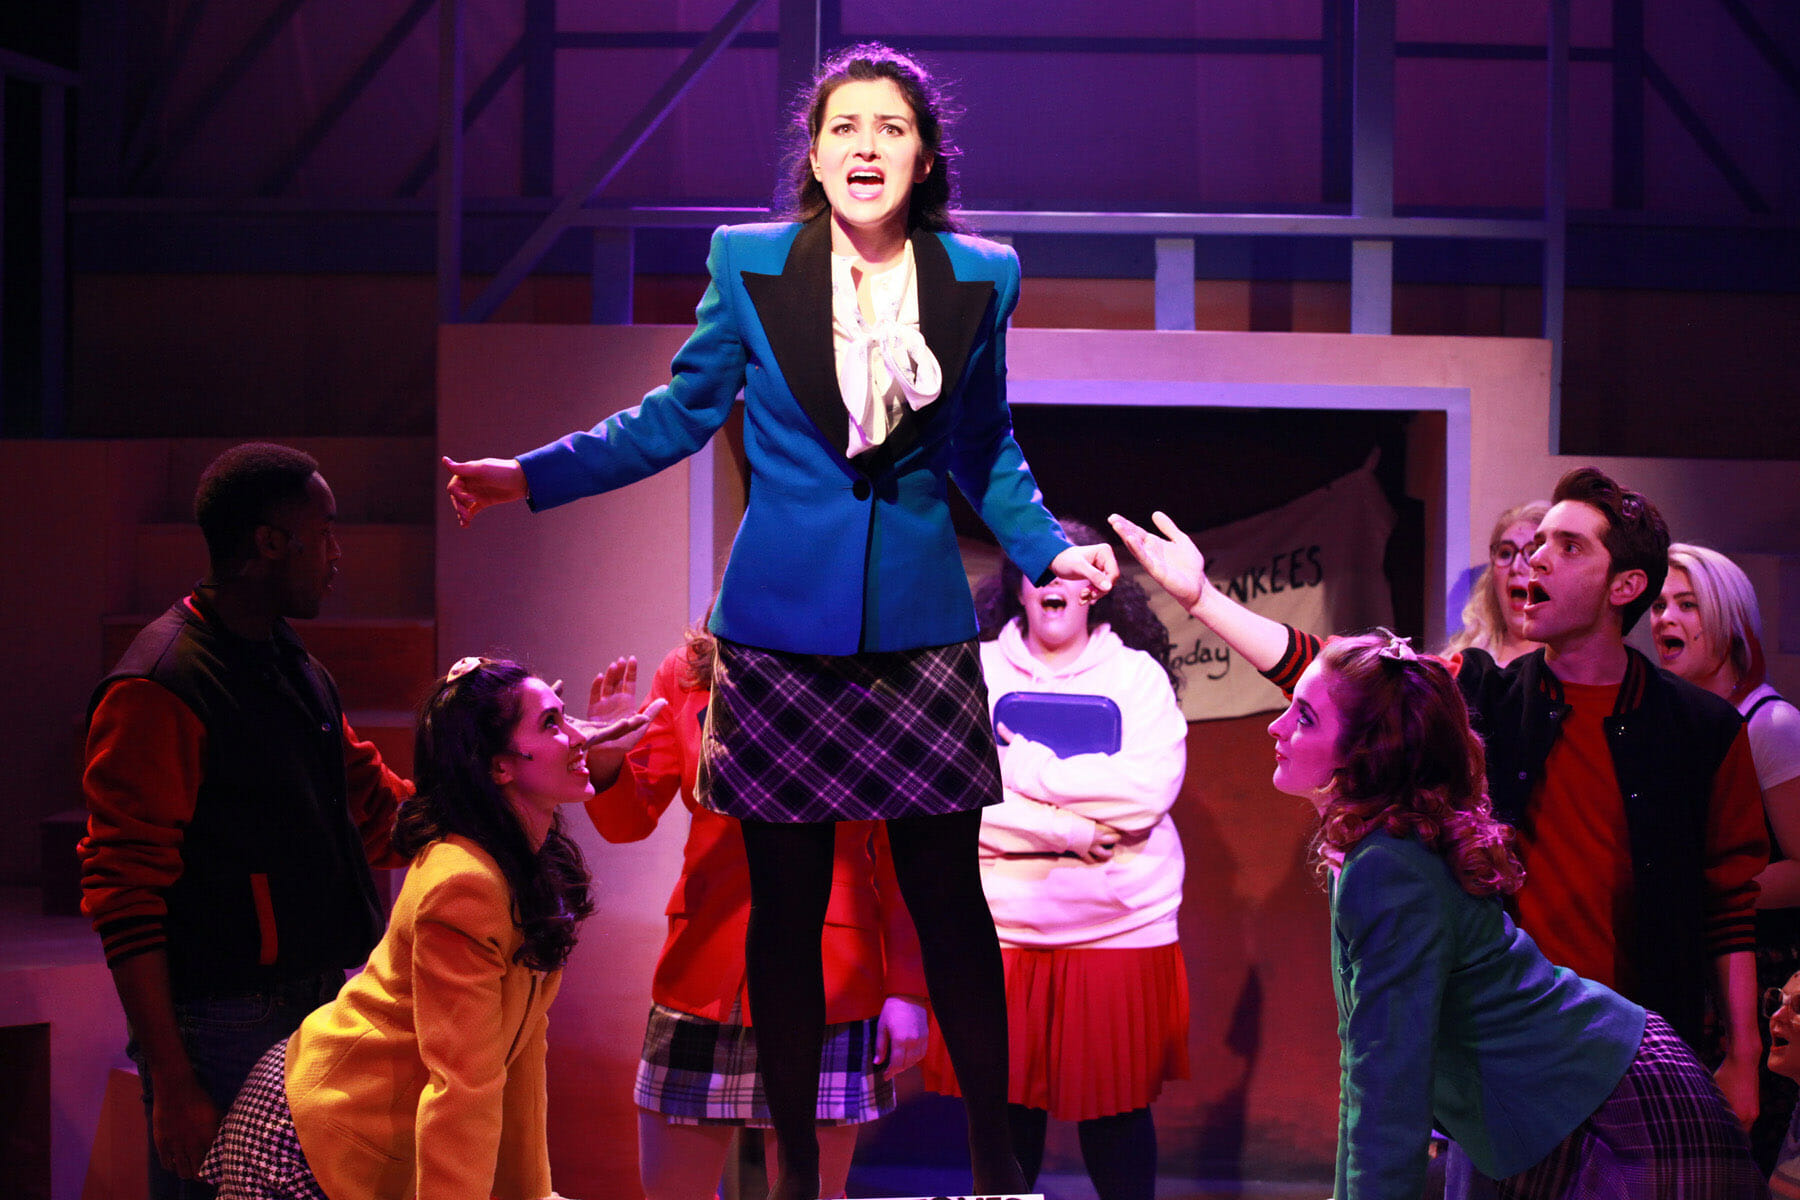 a brief review of heathers 1980s film veronica sawyer Heathers, the musical opens print email tweet details published: thursday, july 20 2017 heathers, the musical, the darkly delicious musical based on the 1980's cult movie heathers the musical is the story of veronica sawyer, a brainy.